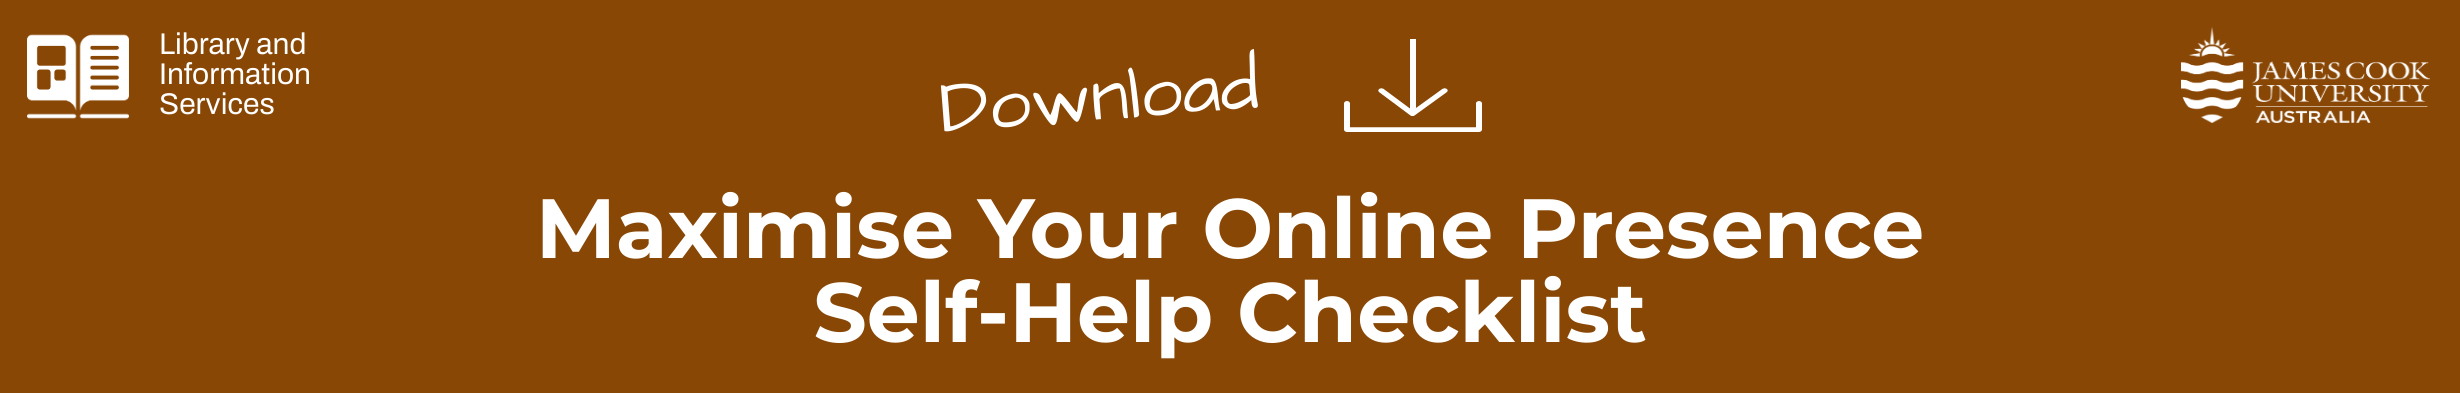 Download the maximise your online presence self-help checklist